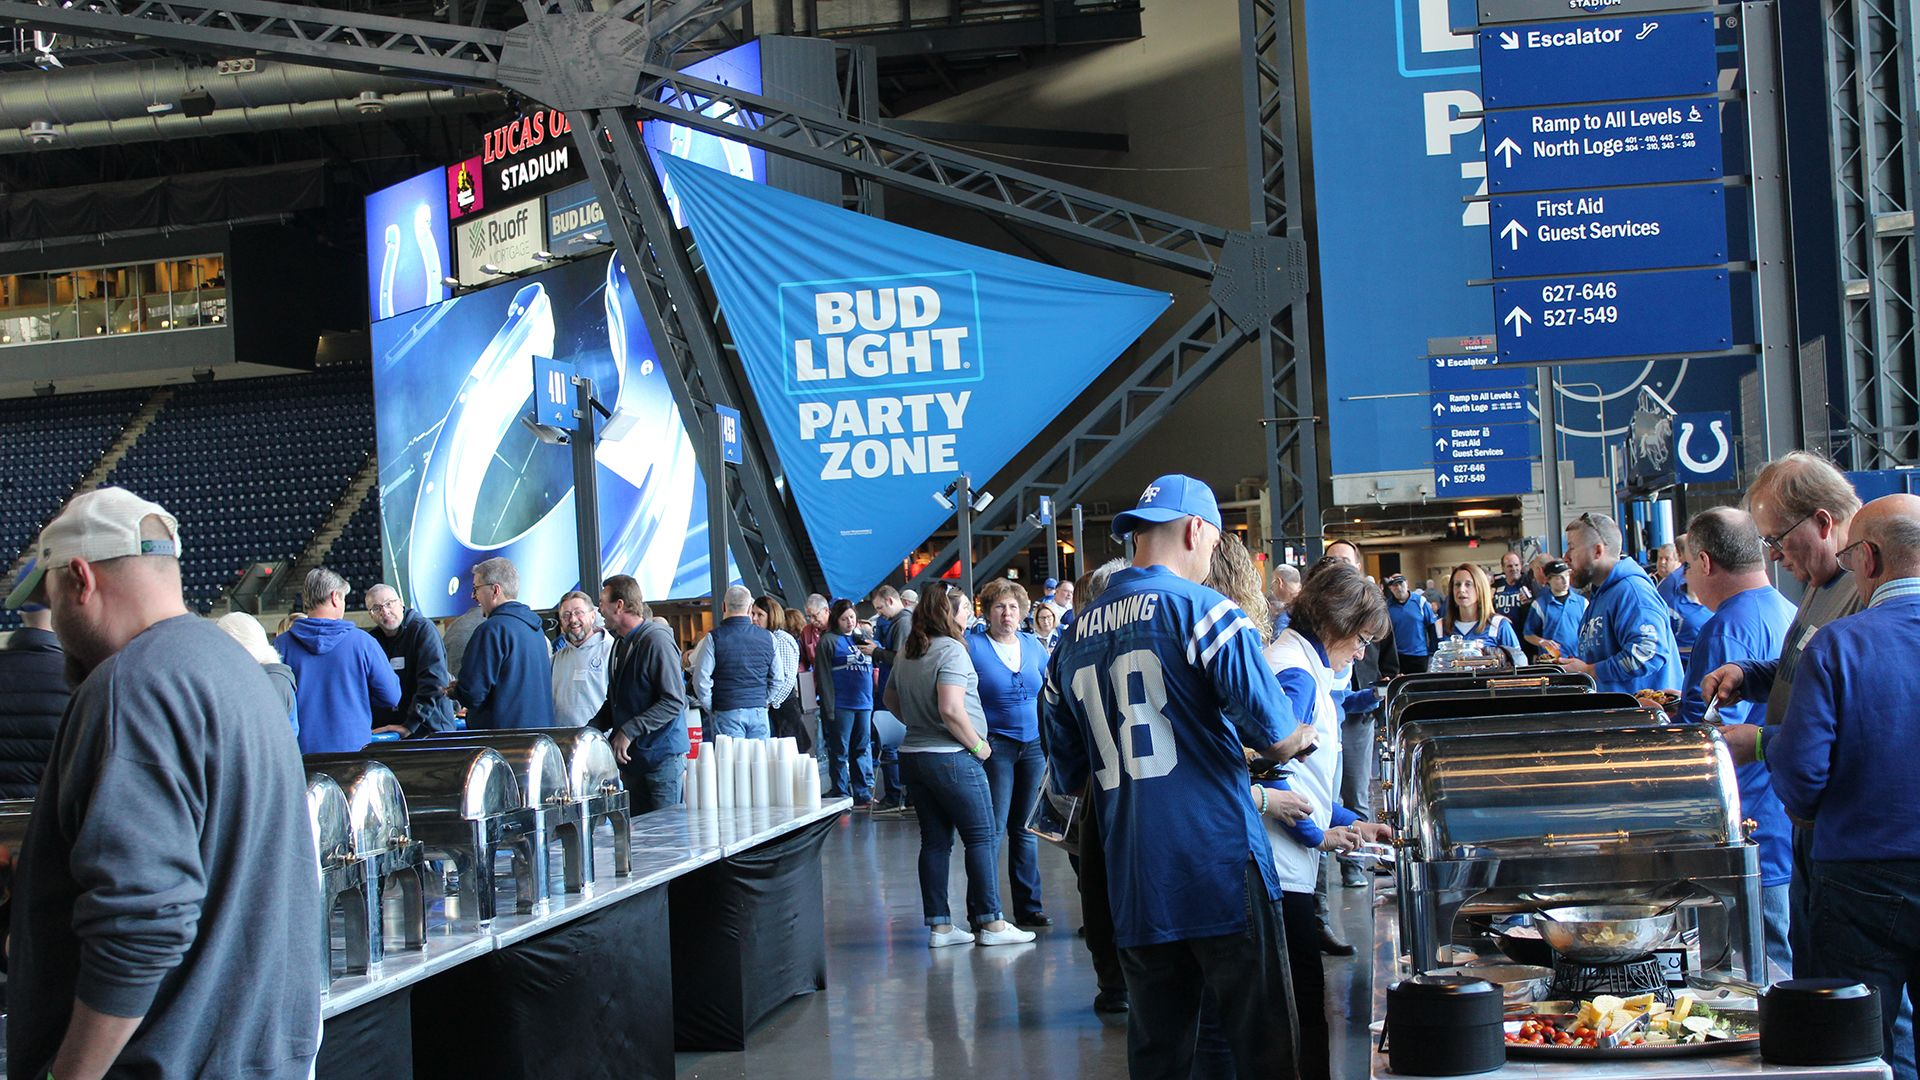 Bud Light Party Zone Corporate Pregame Tailgating Package